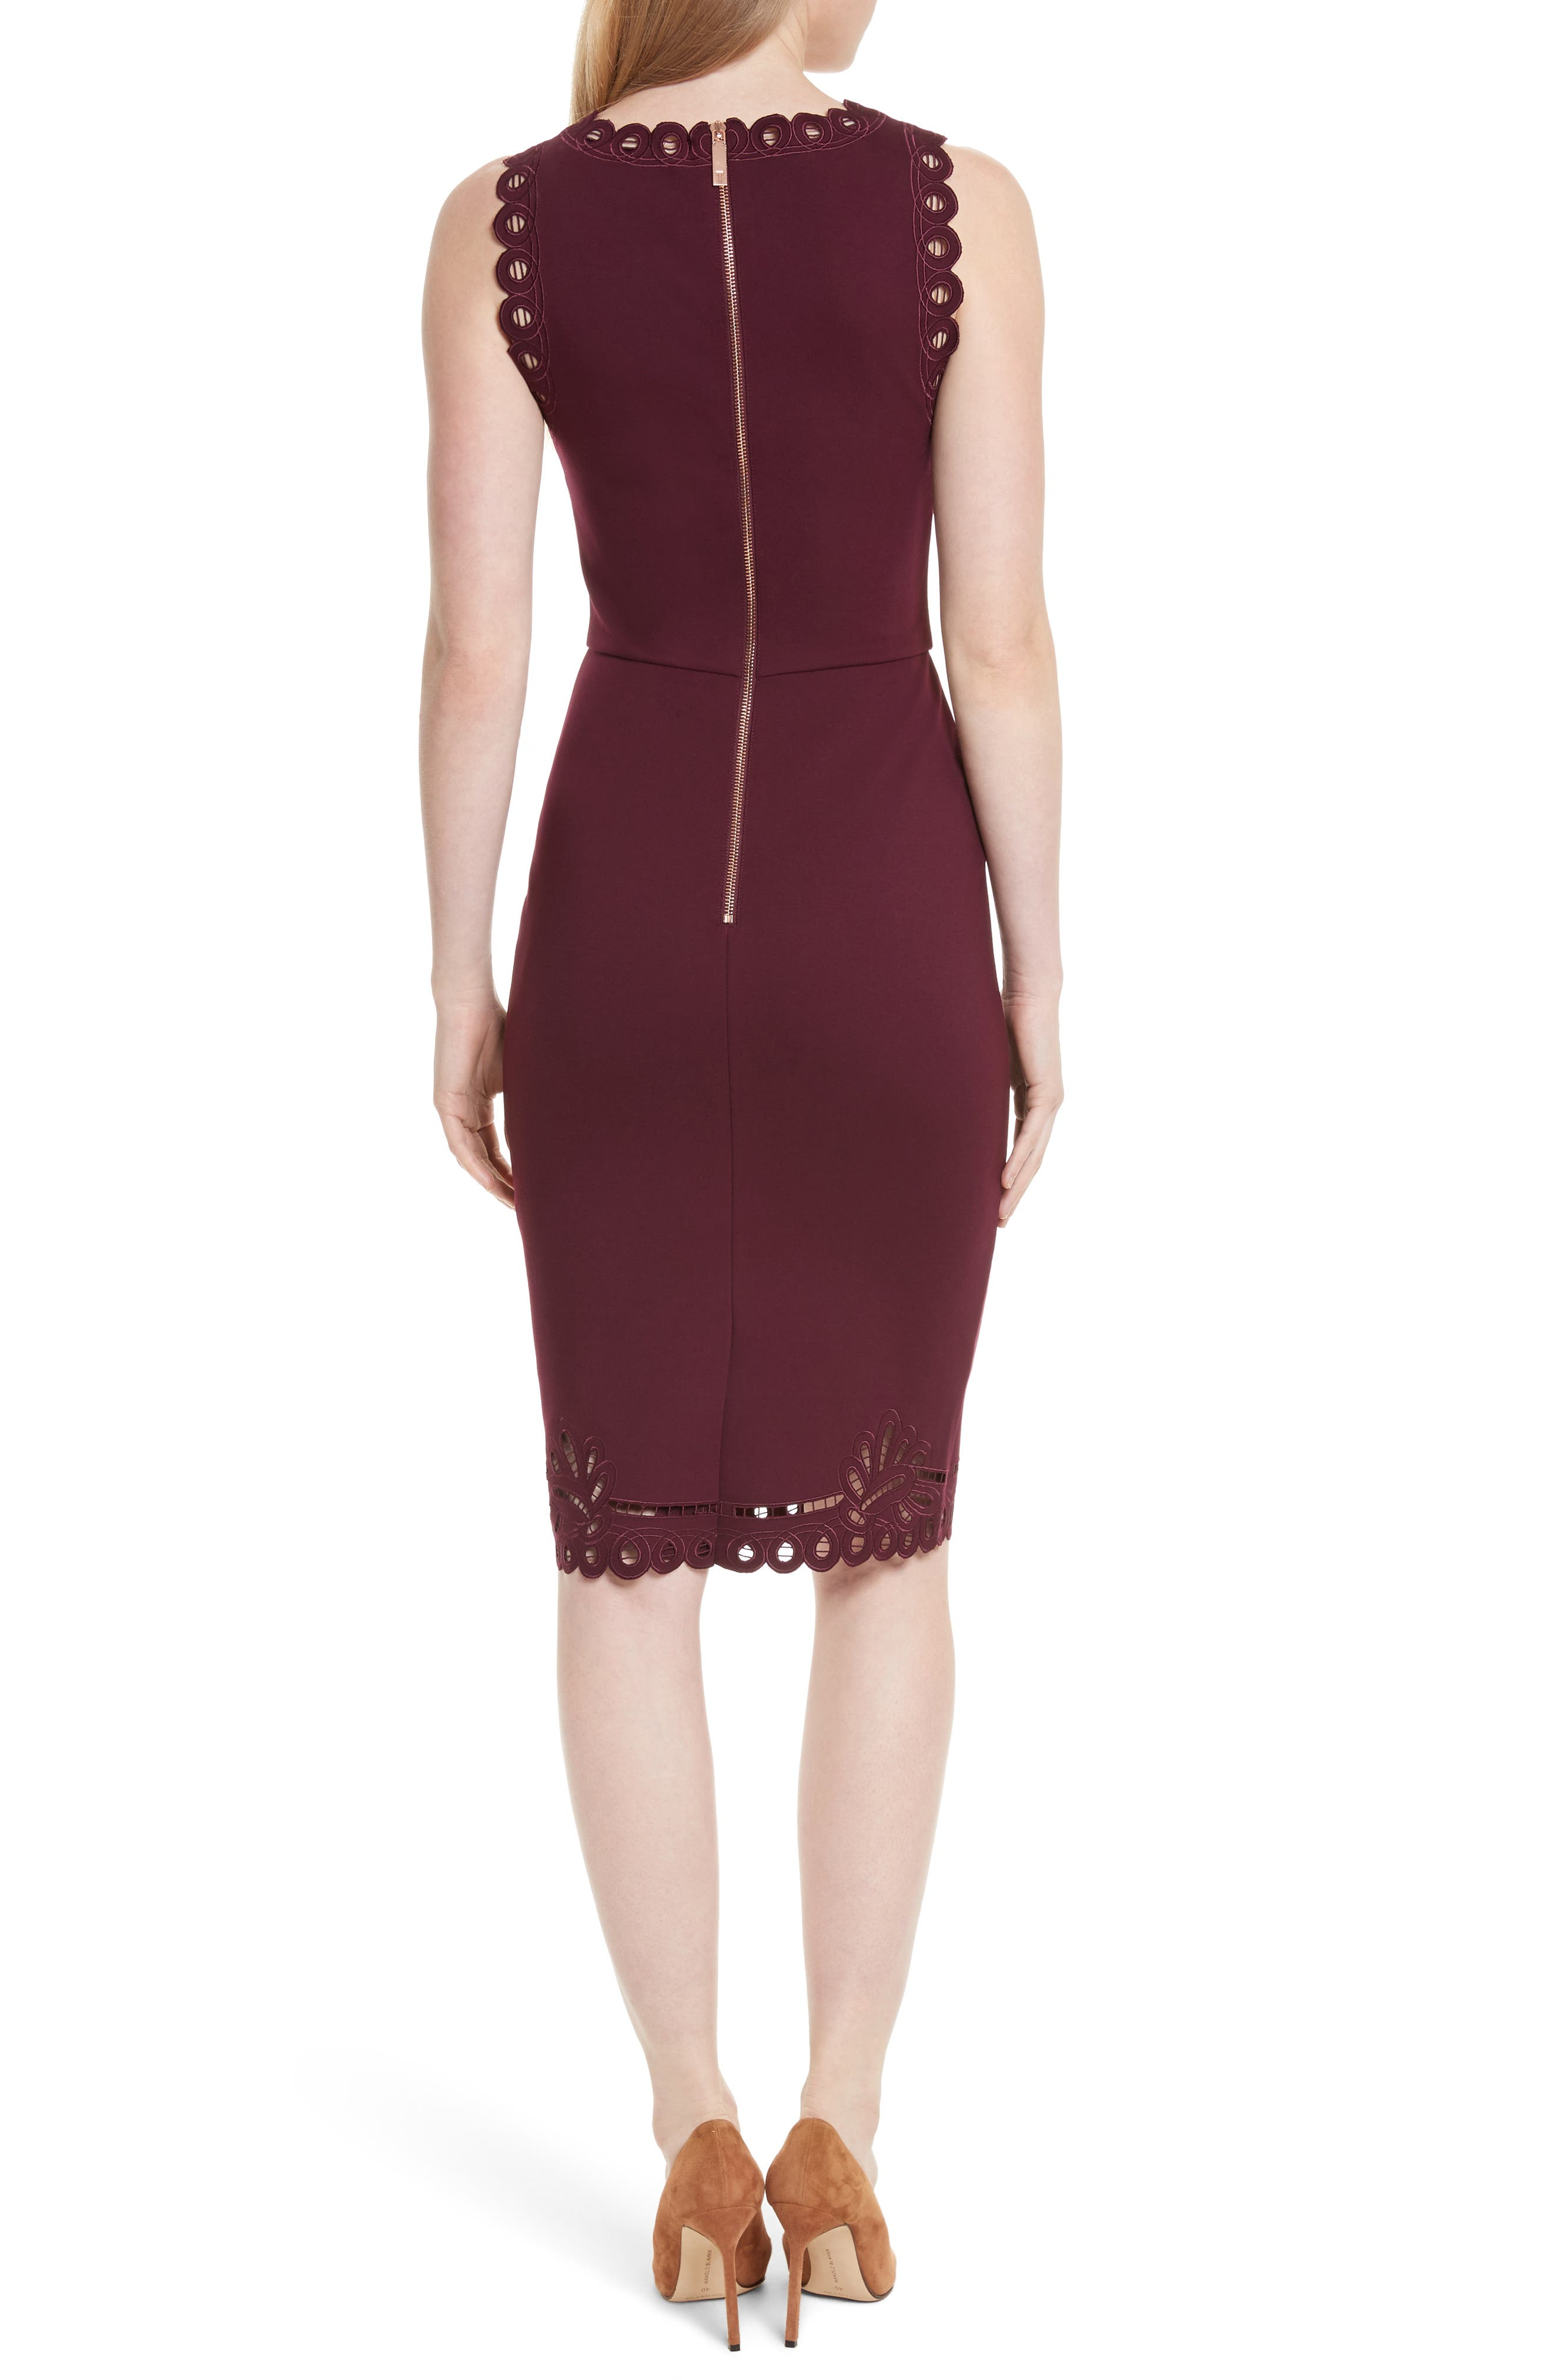 Verita Cutout Yoke Sheath Dress,                             Alternate thumbnail 2, color,                             930